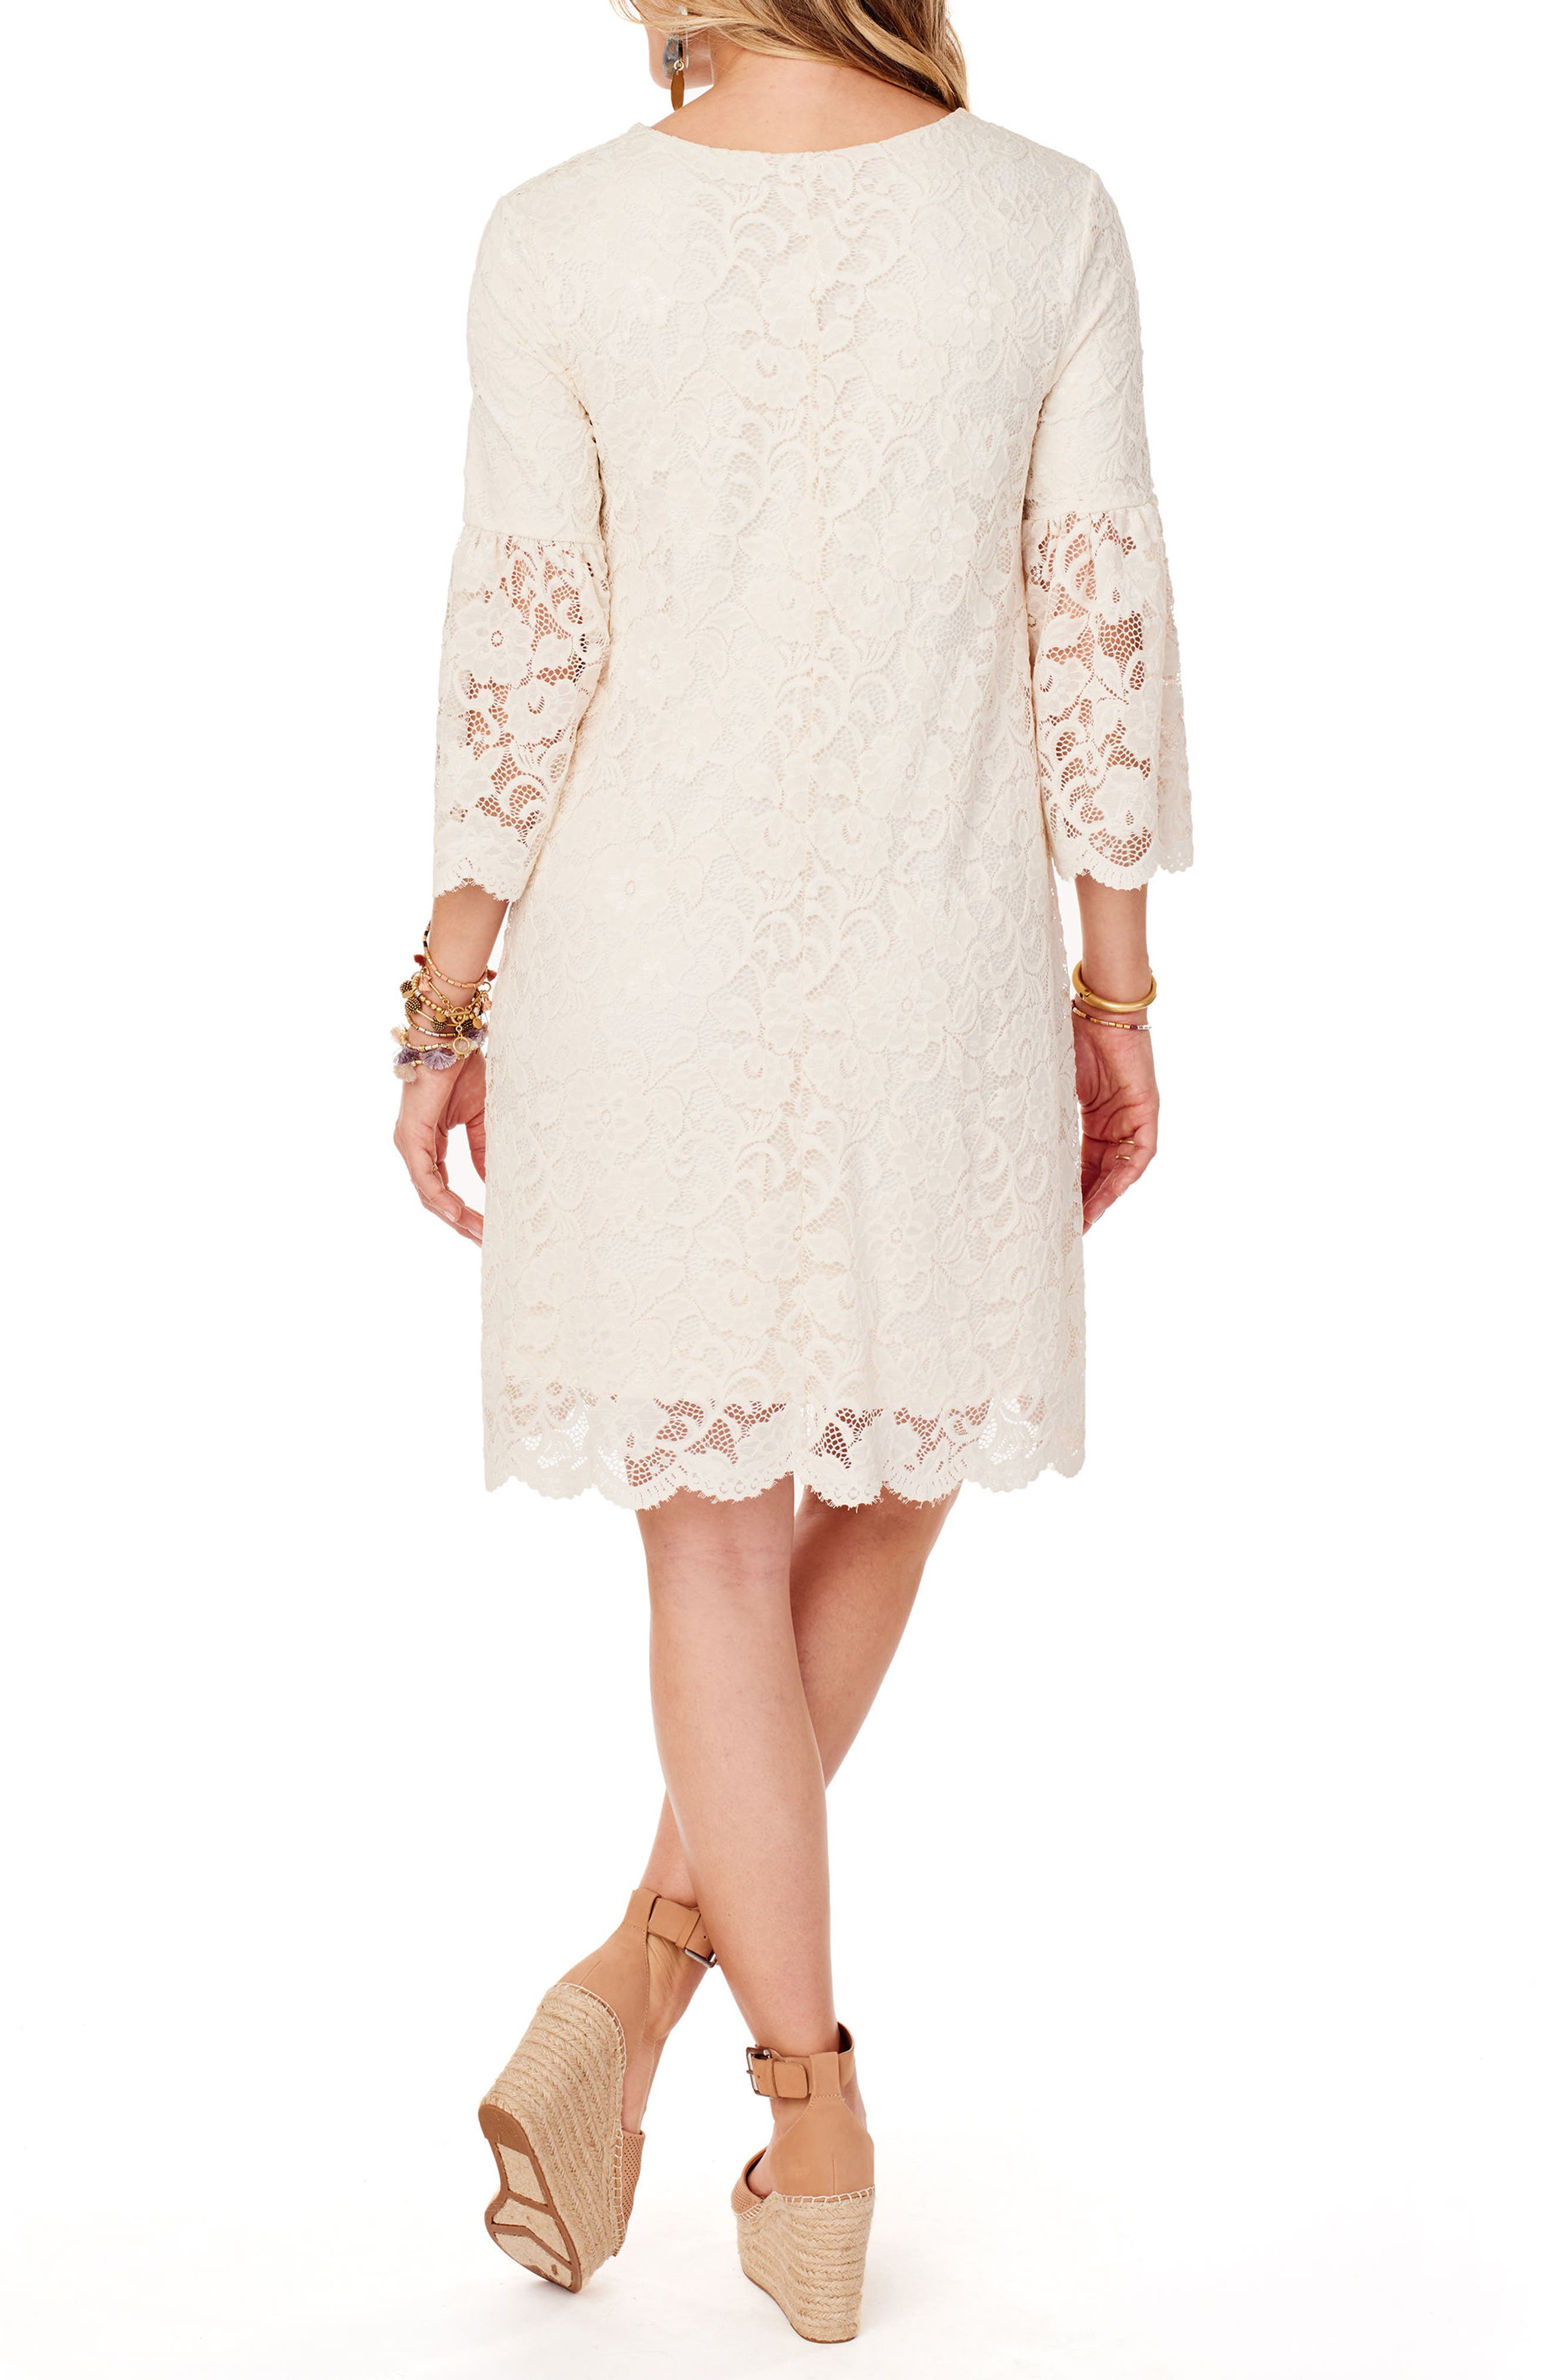 Lace Bell Sleeve Maternity Dress,                             Alternate thumbnail 2, color,                             Ivory